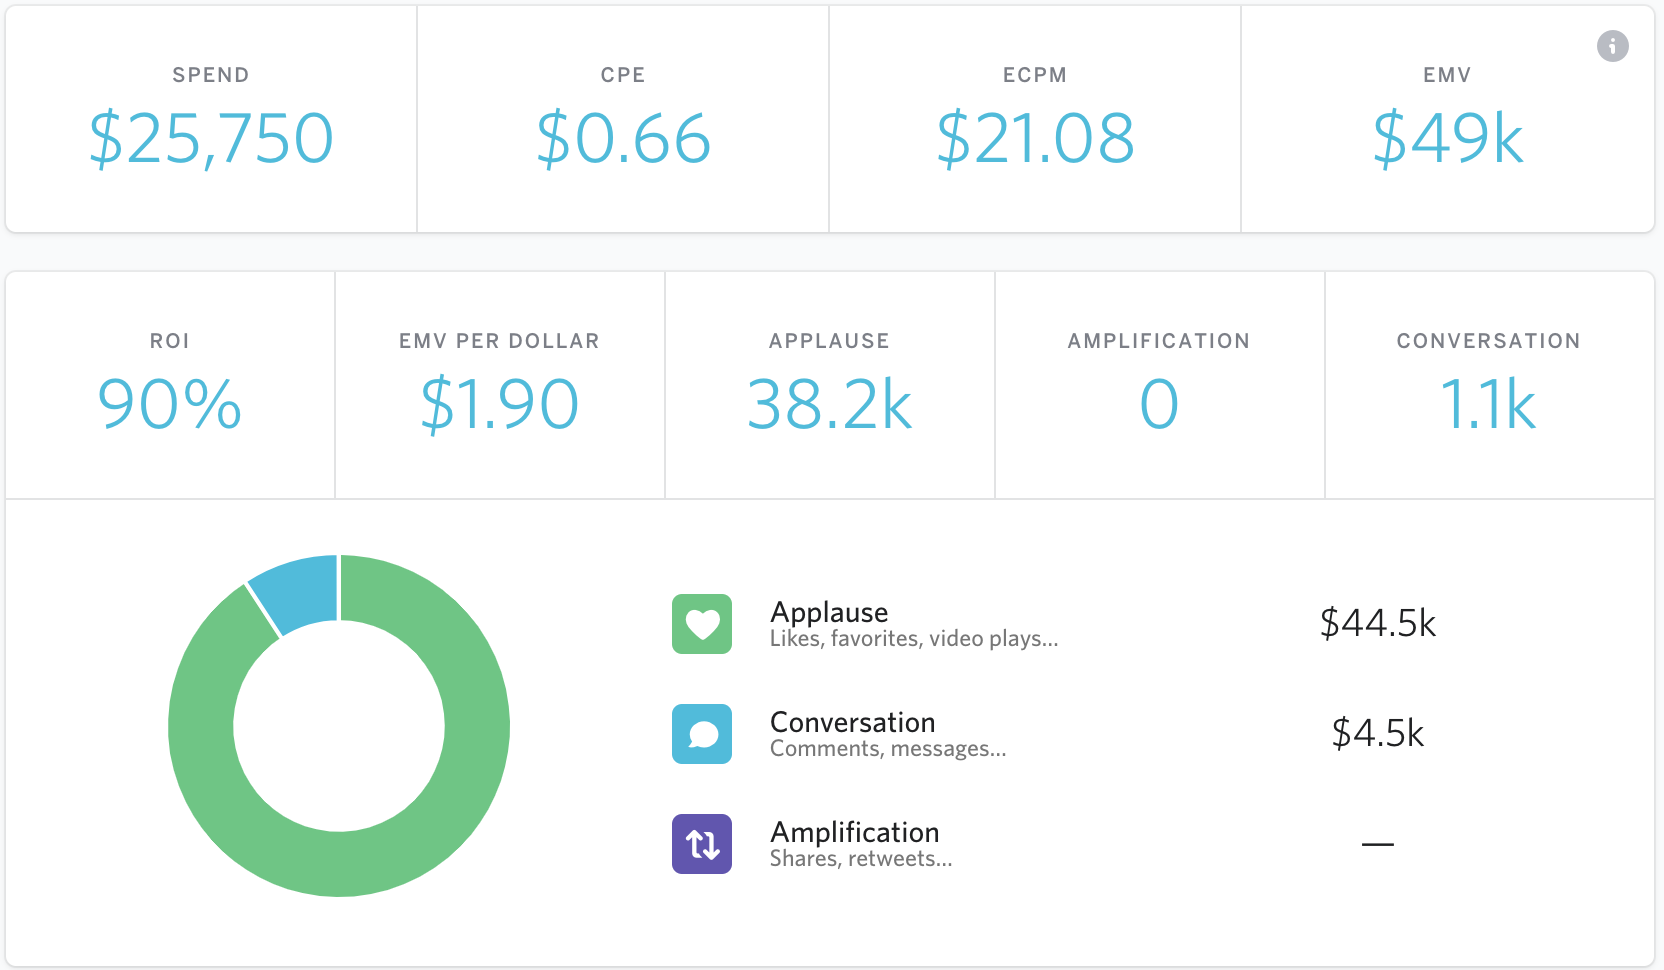 EMV and other influencer marketing reporting metrics